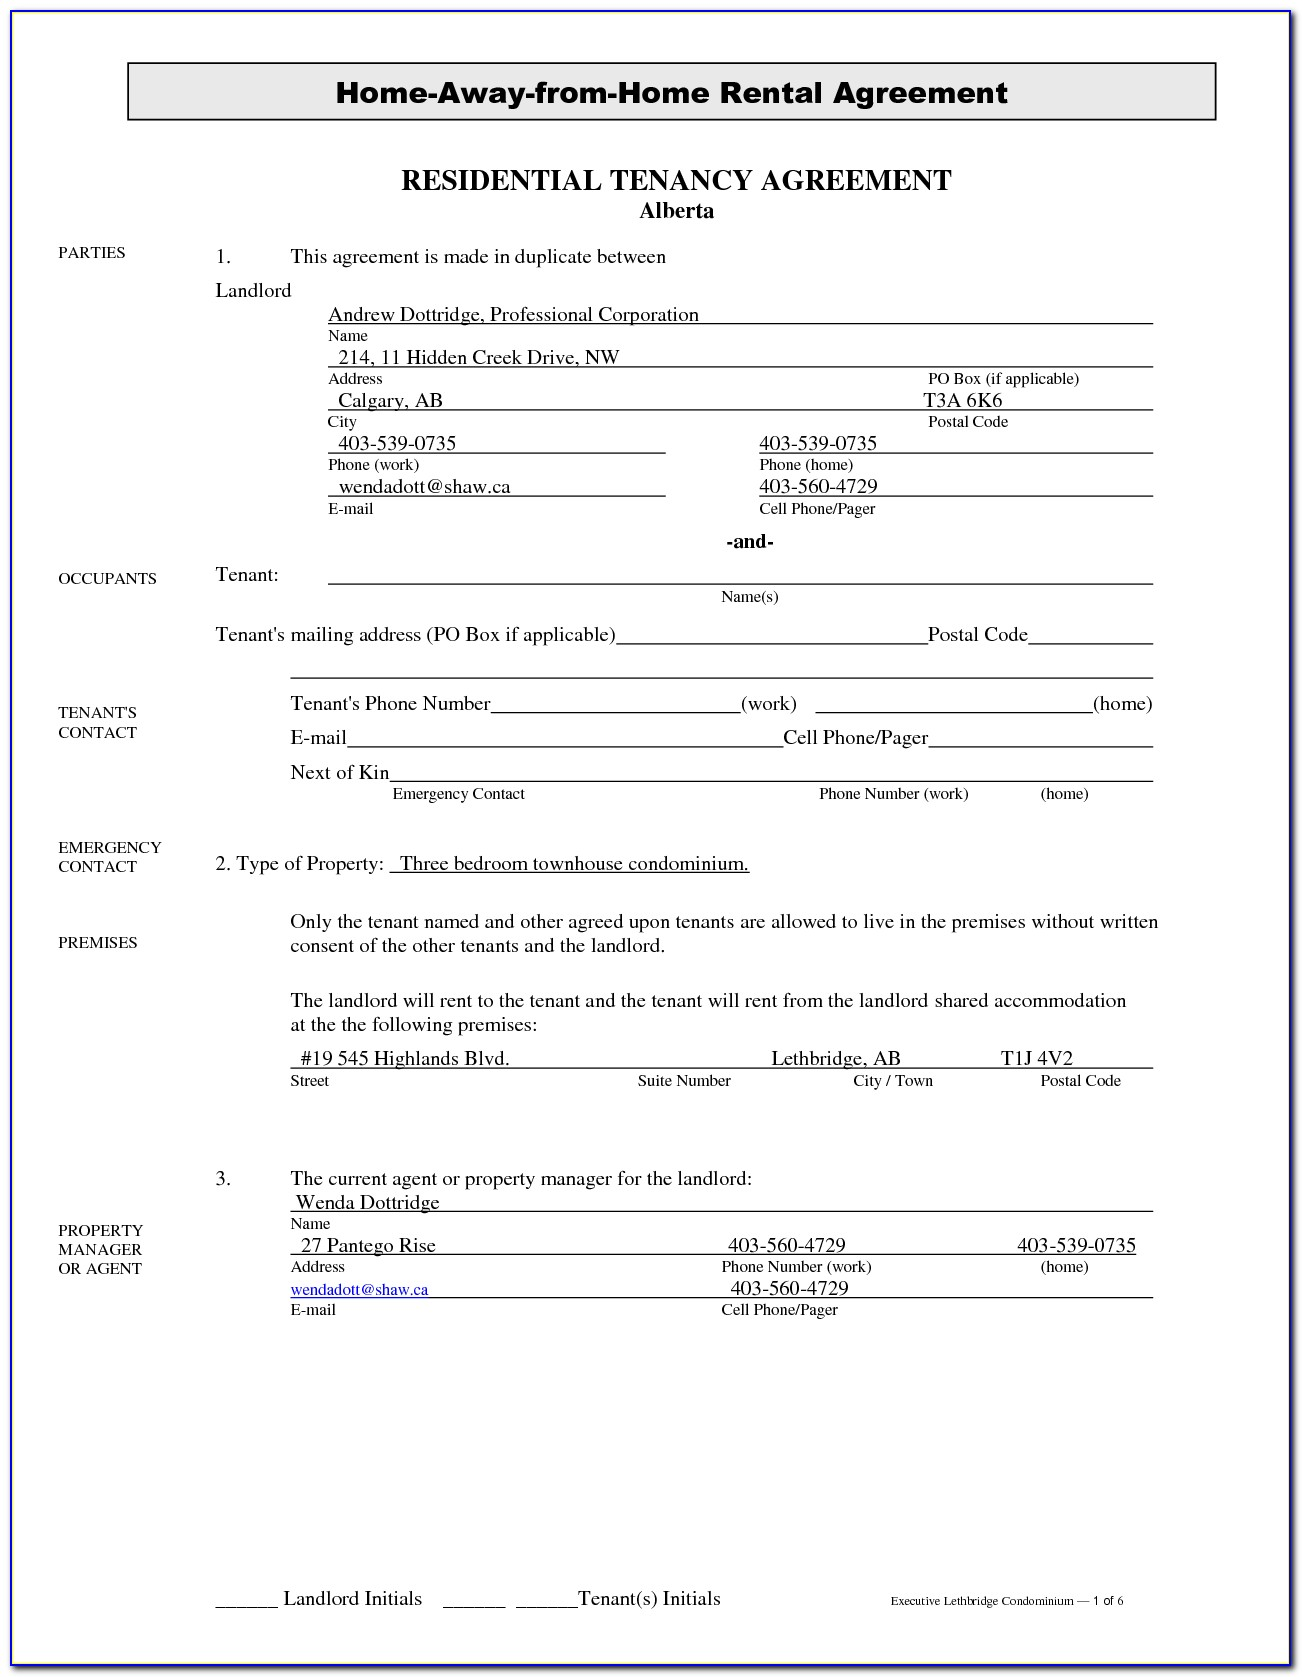 Alberta Tenancy Agreement Form